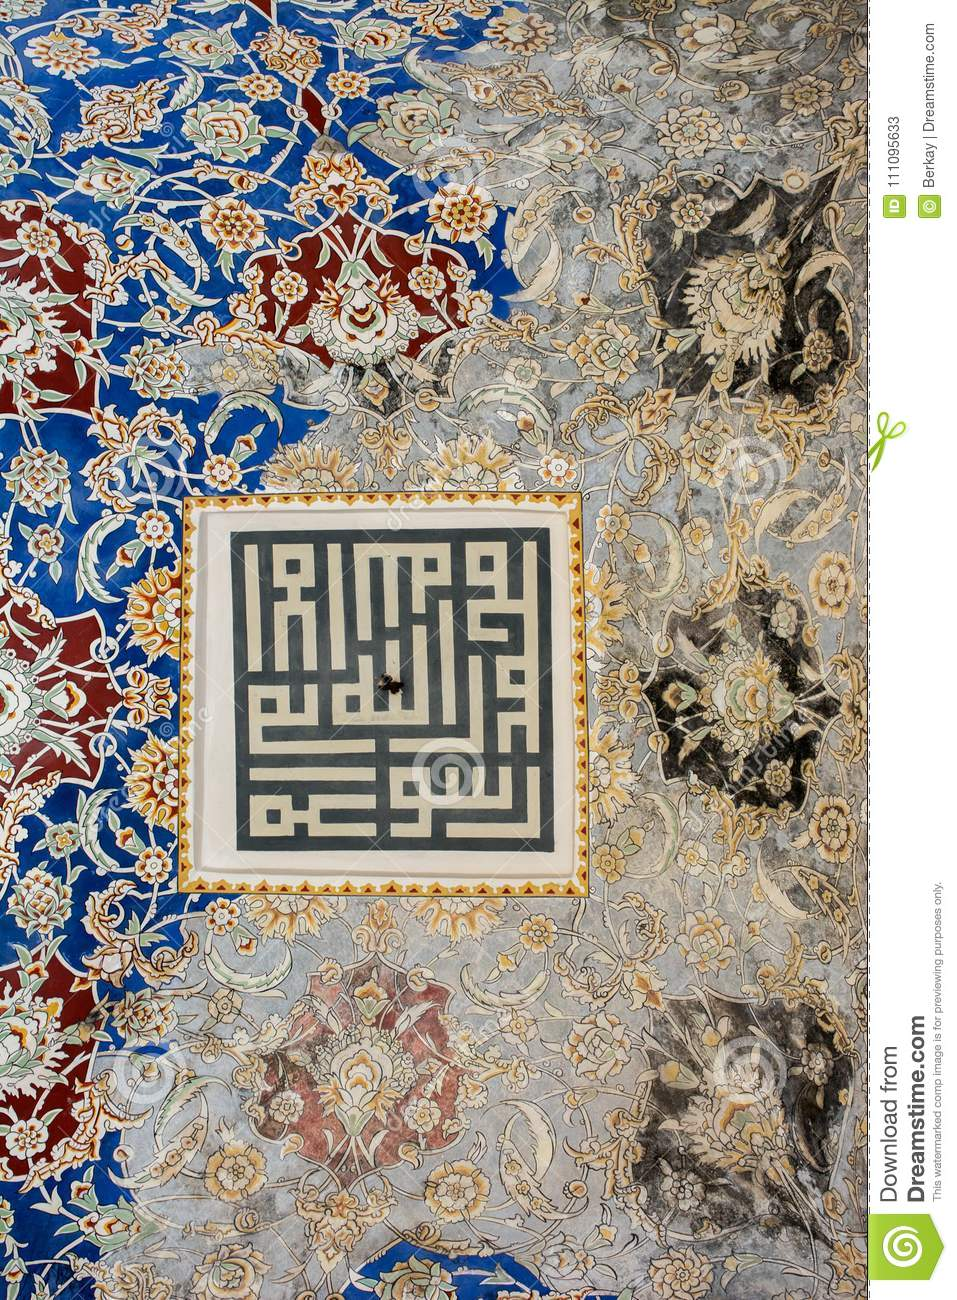 Ottoman Art With Geometric Patterns On Wood Stock Image - Image of